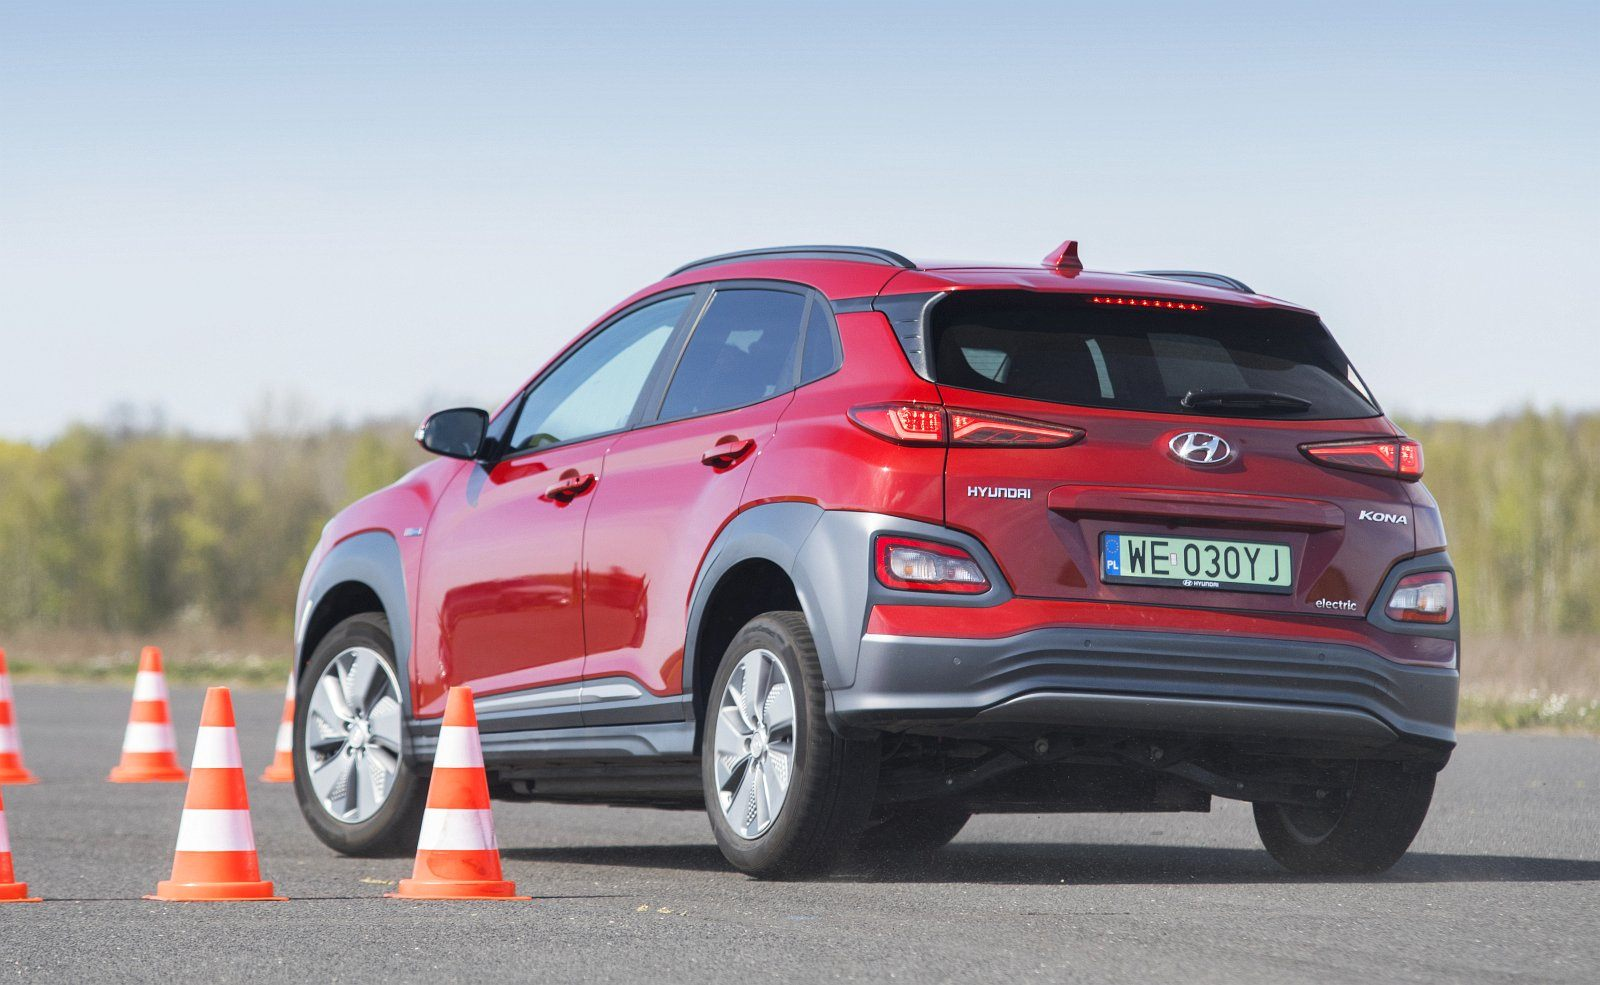 hyundai kona electric 64 kwh test 2020 tył 01